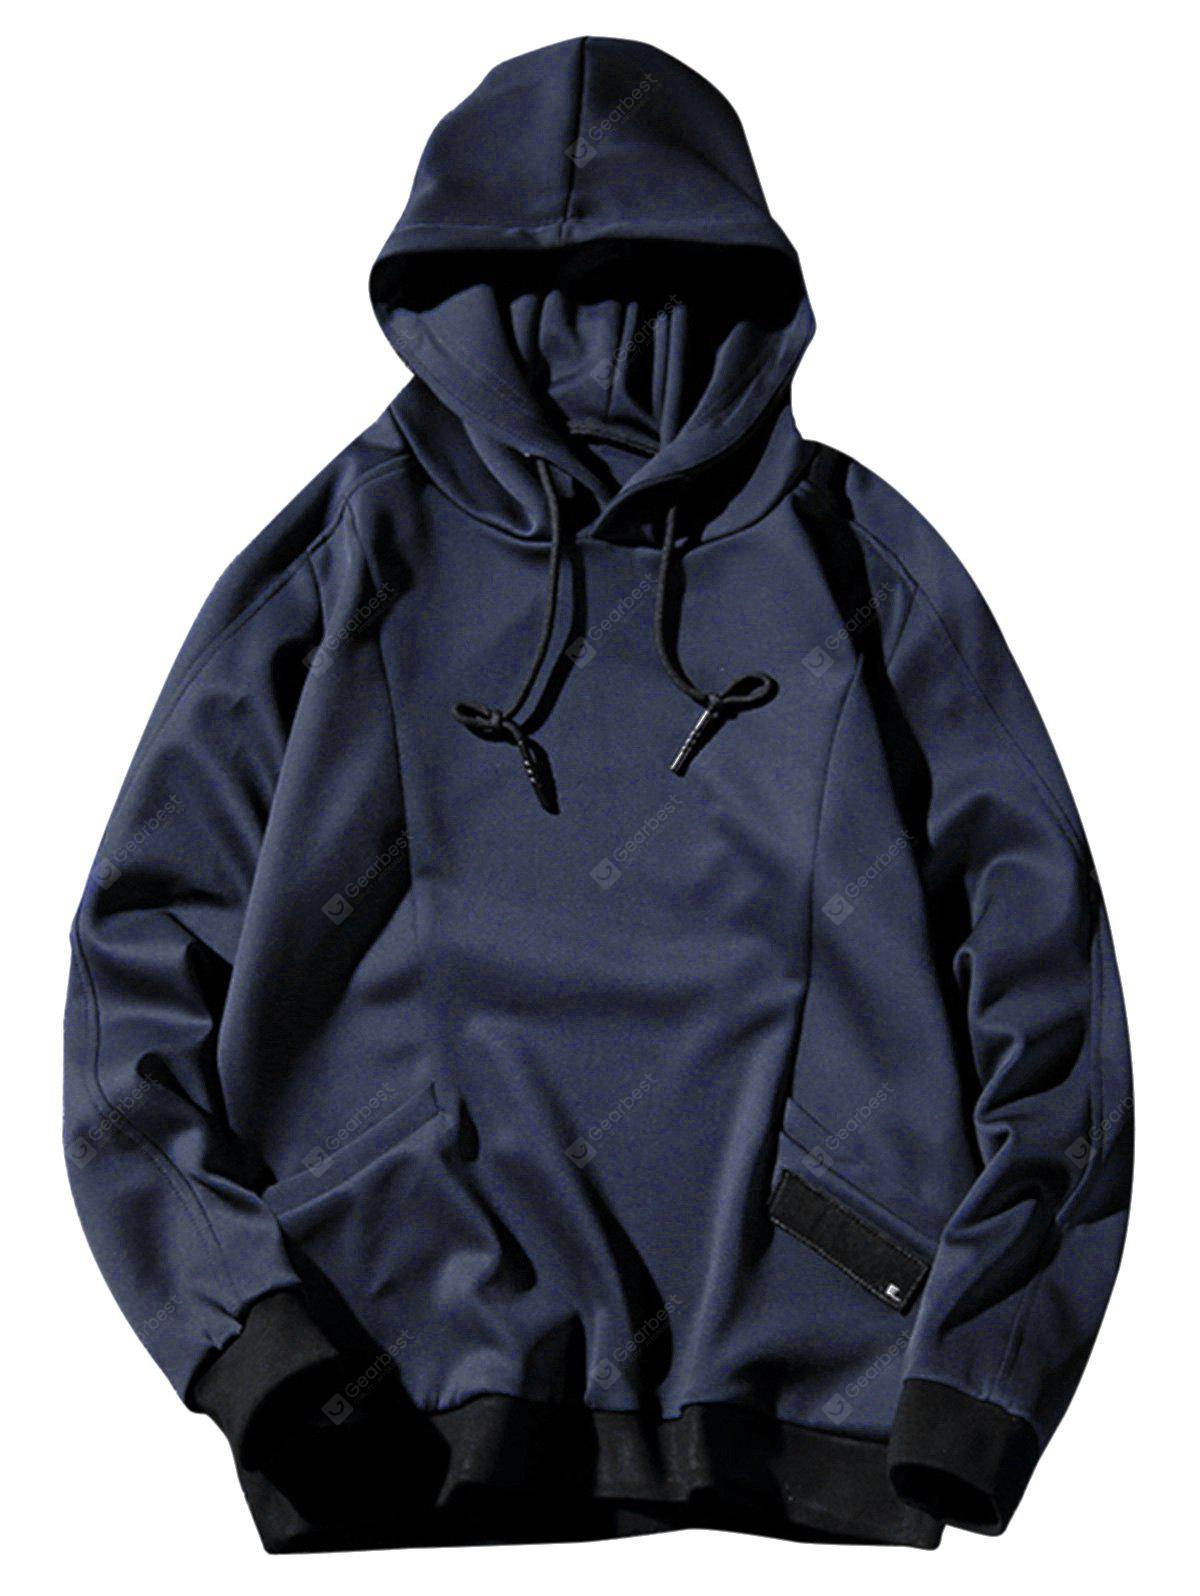 Two Pockets Sports Casual Pullover Hoodie